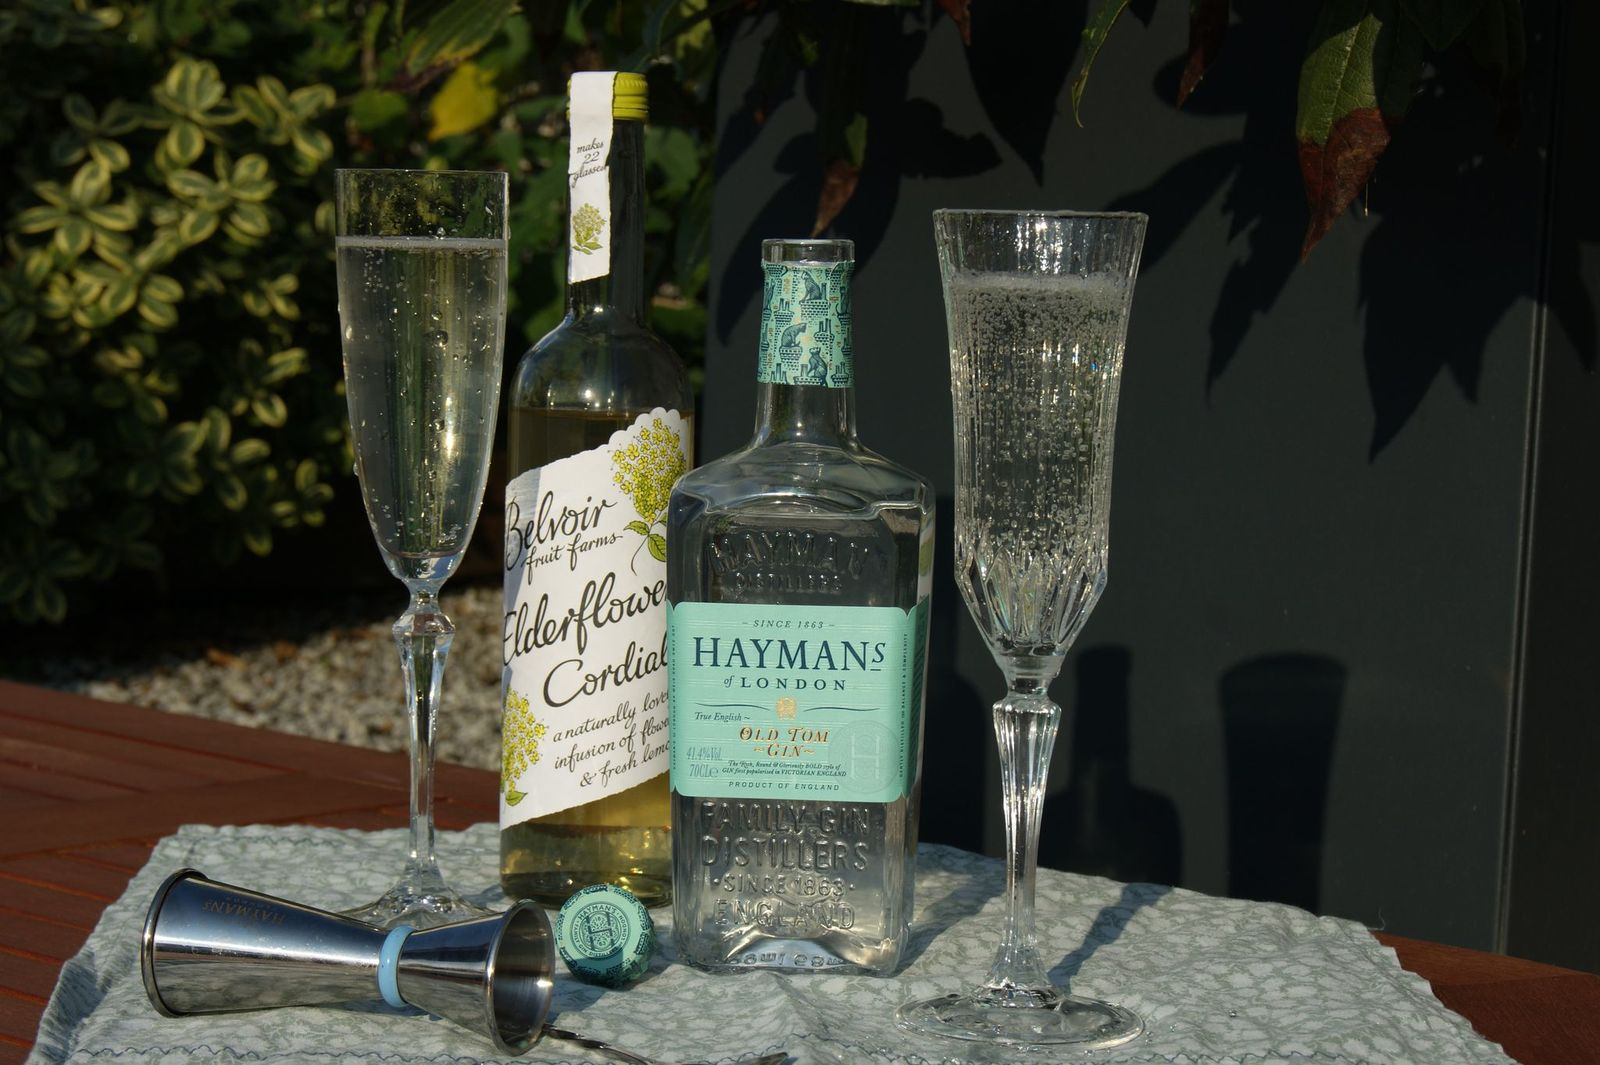 Hayman's Tom Cat Cocktail